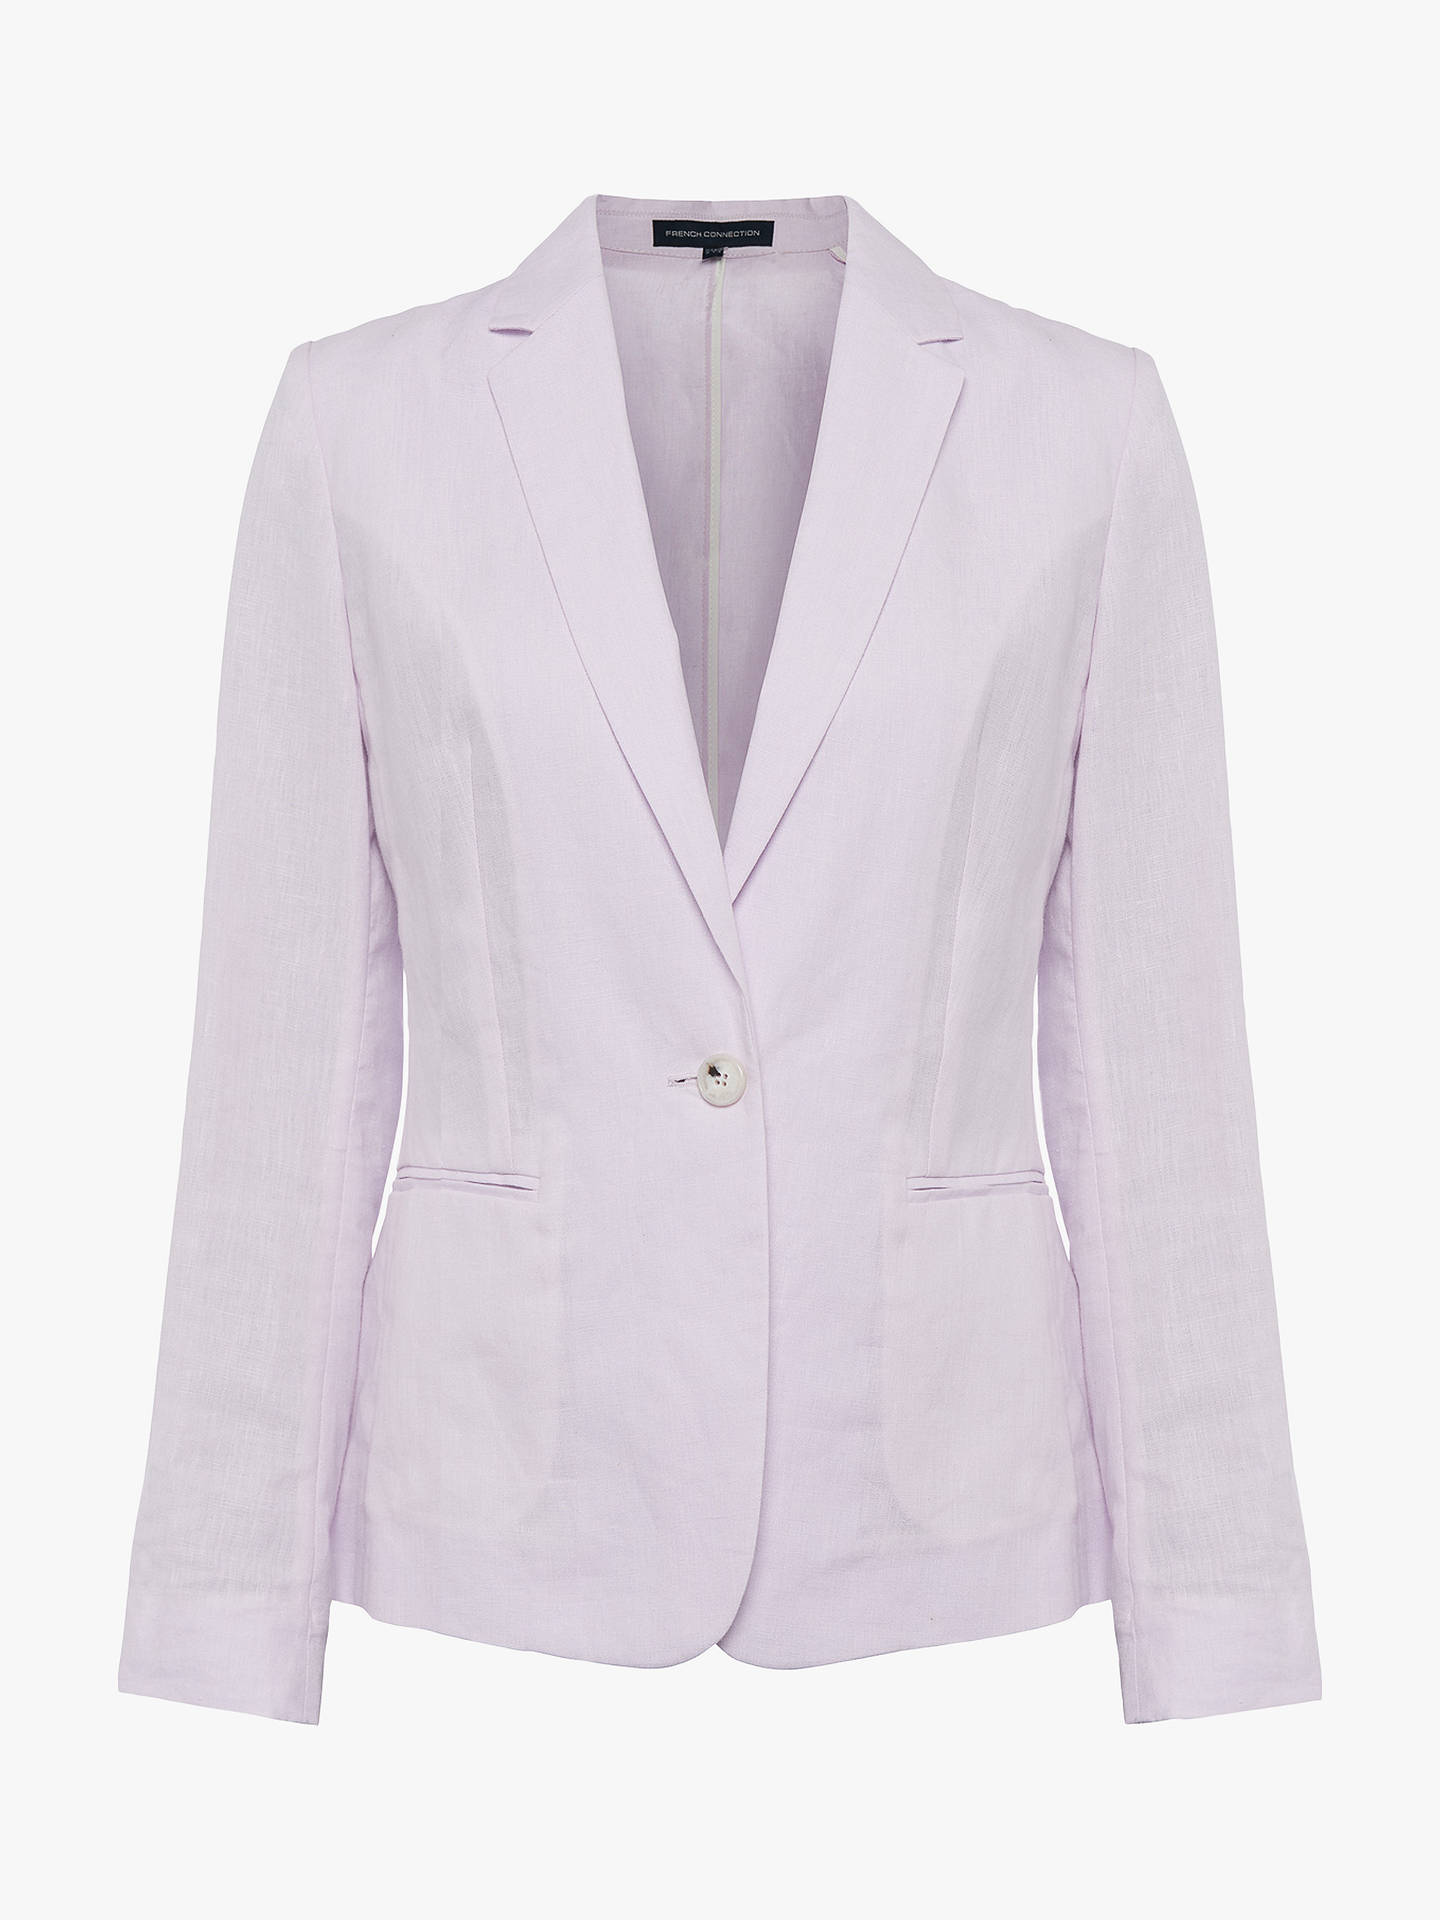 Buy French Connection Dina Linen Single Breasted Jacket, Lavender Frost, 8 Online at johnlewis.com